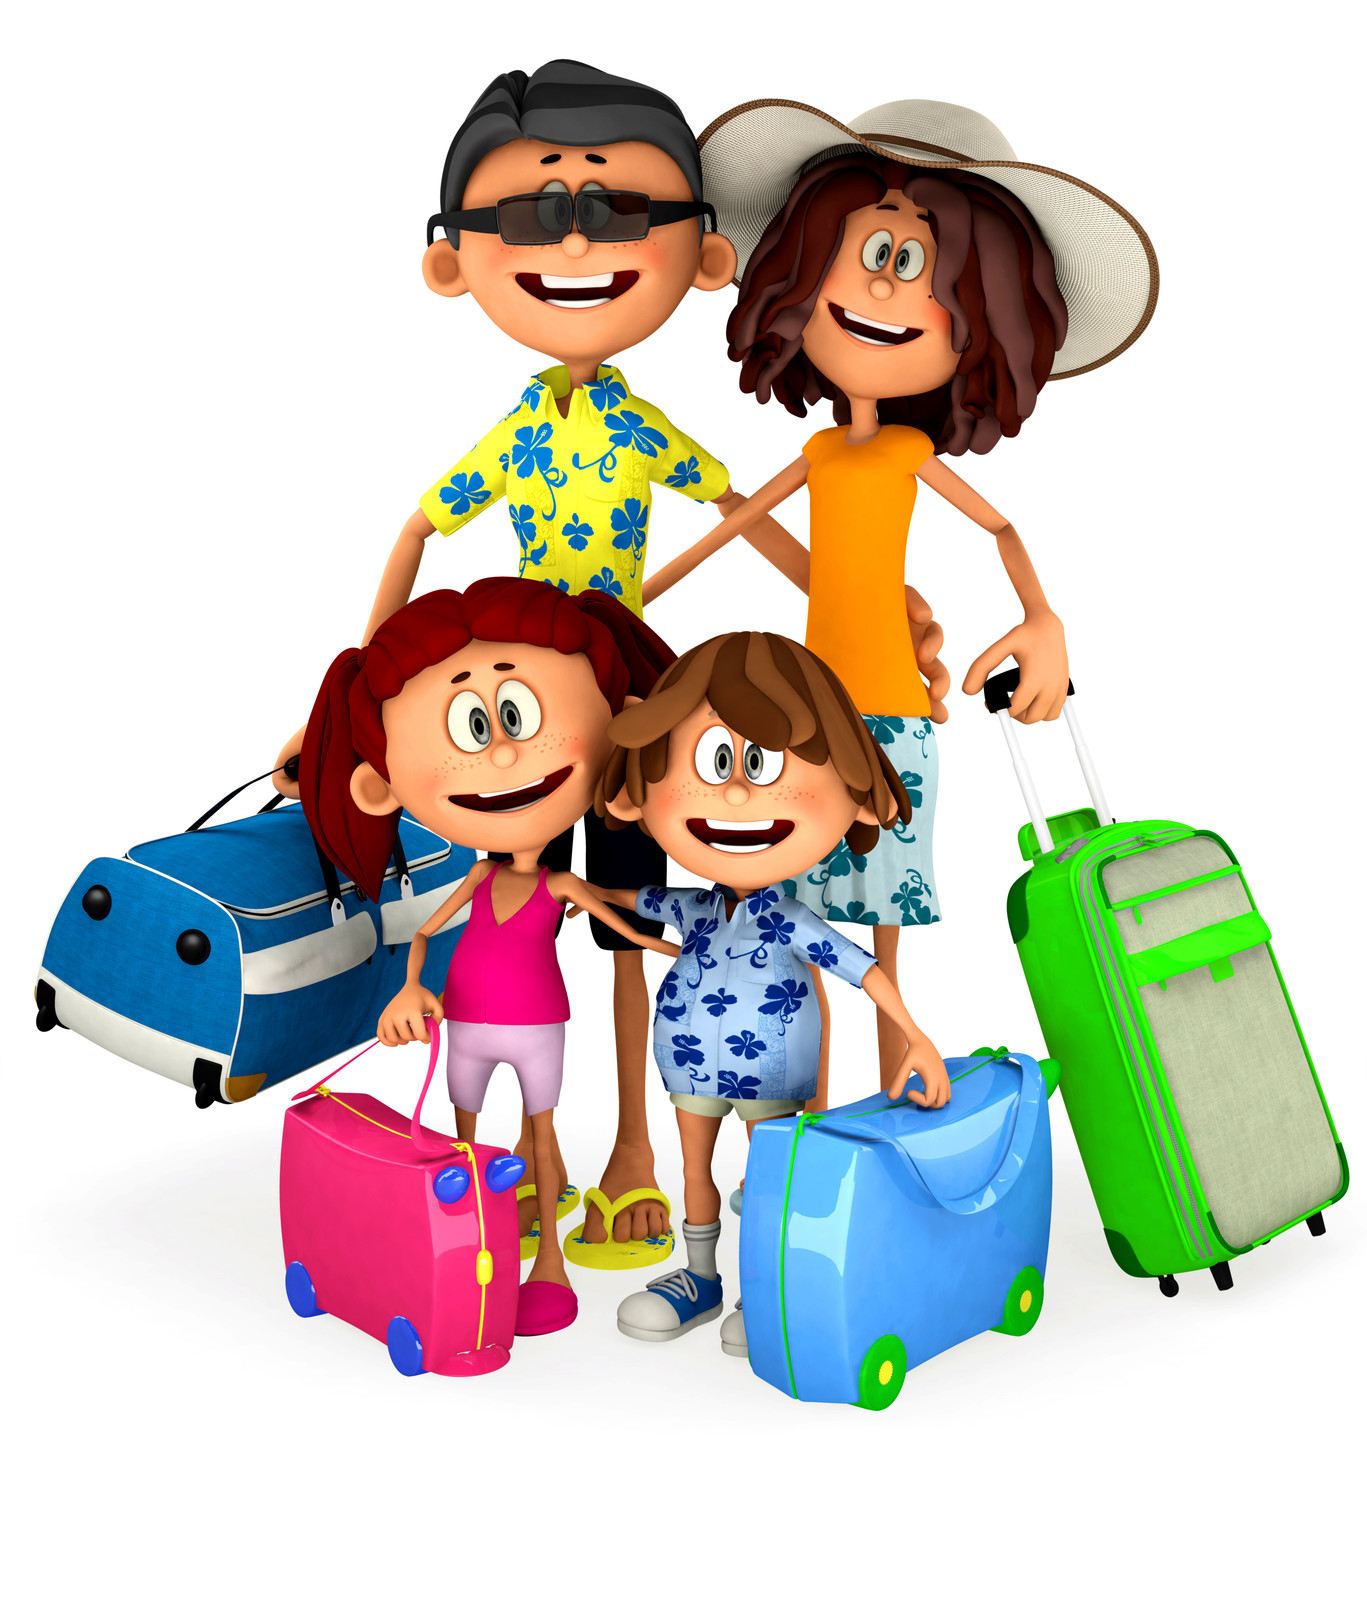 Free People Traveling Cliparts, Download Free Clip Art, Free.